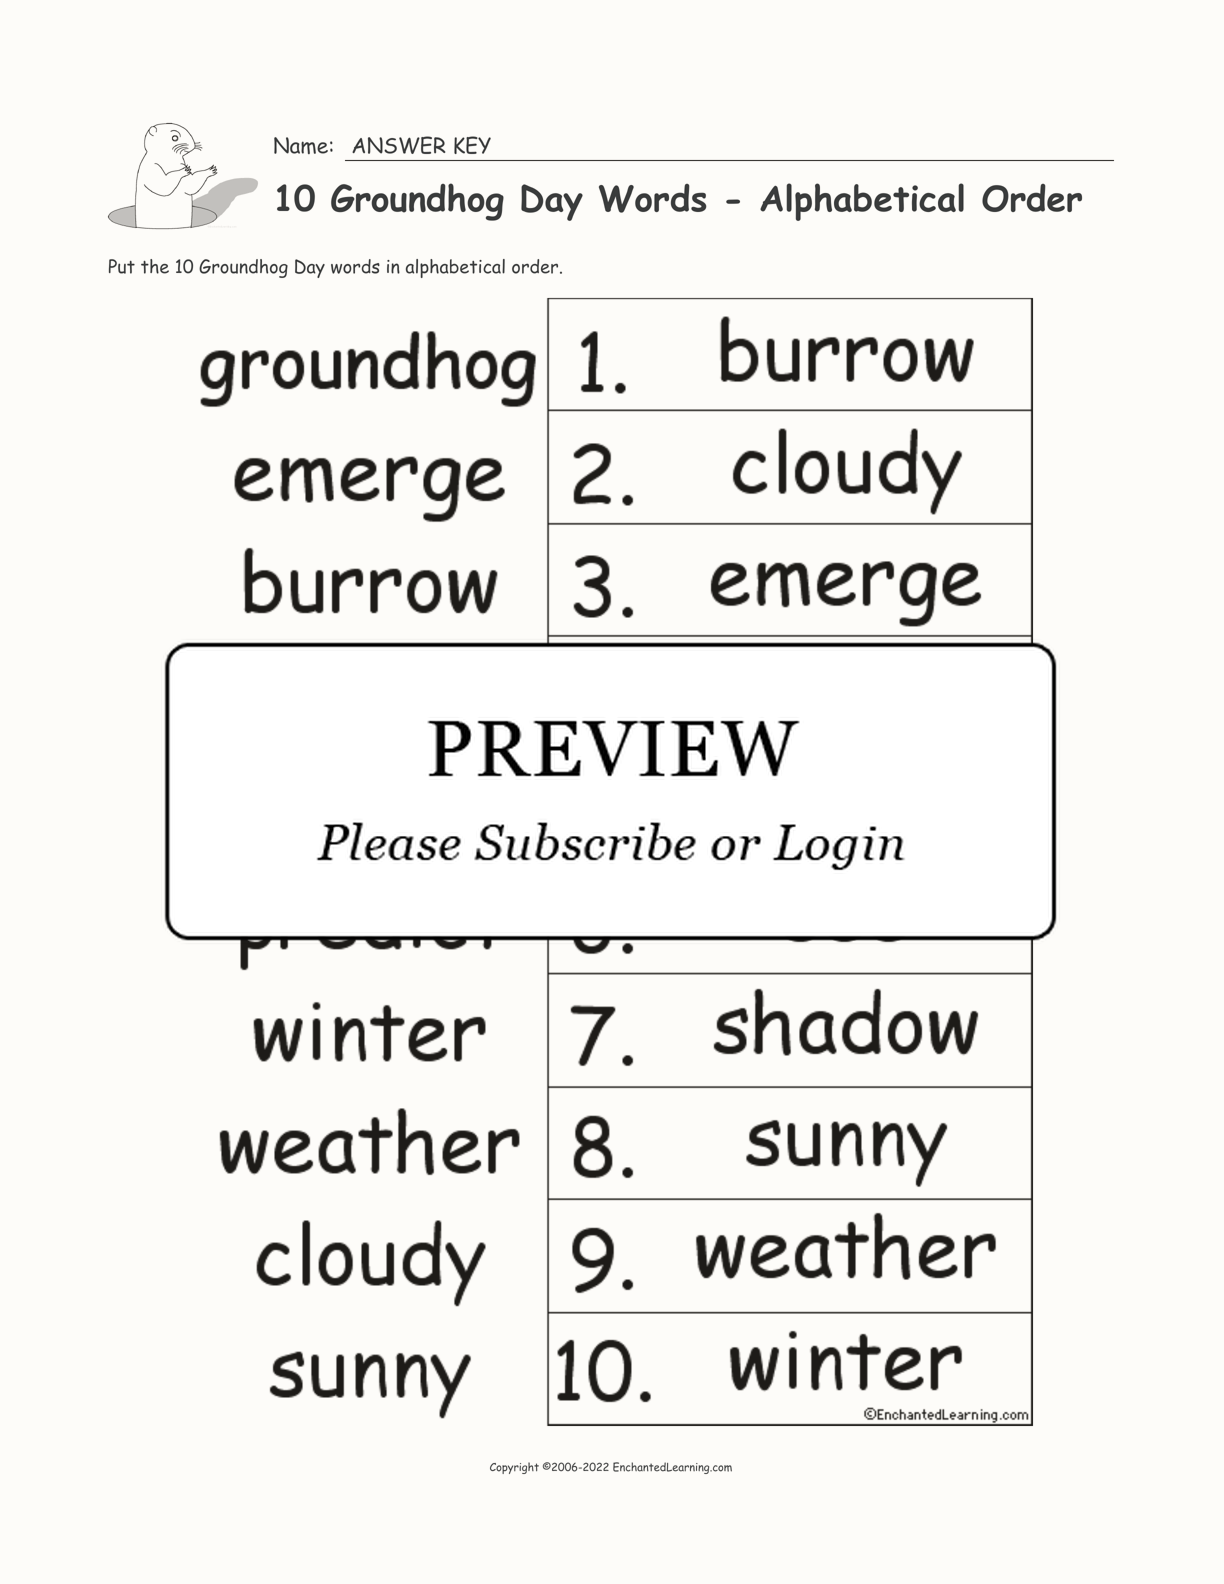 10 Groundhog Day Words - Alphabetical Order interactive worksheet page 2